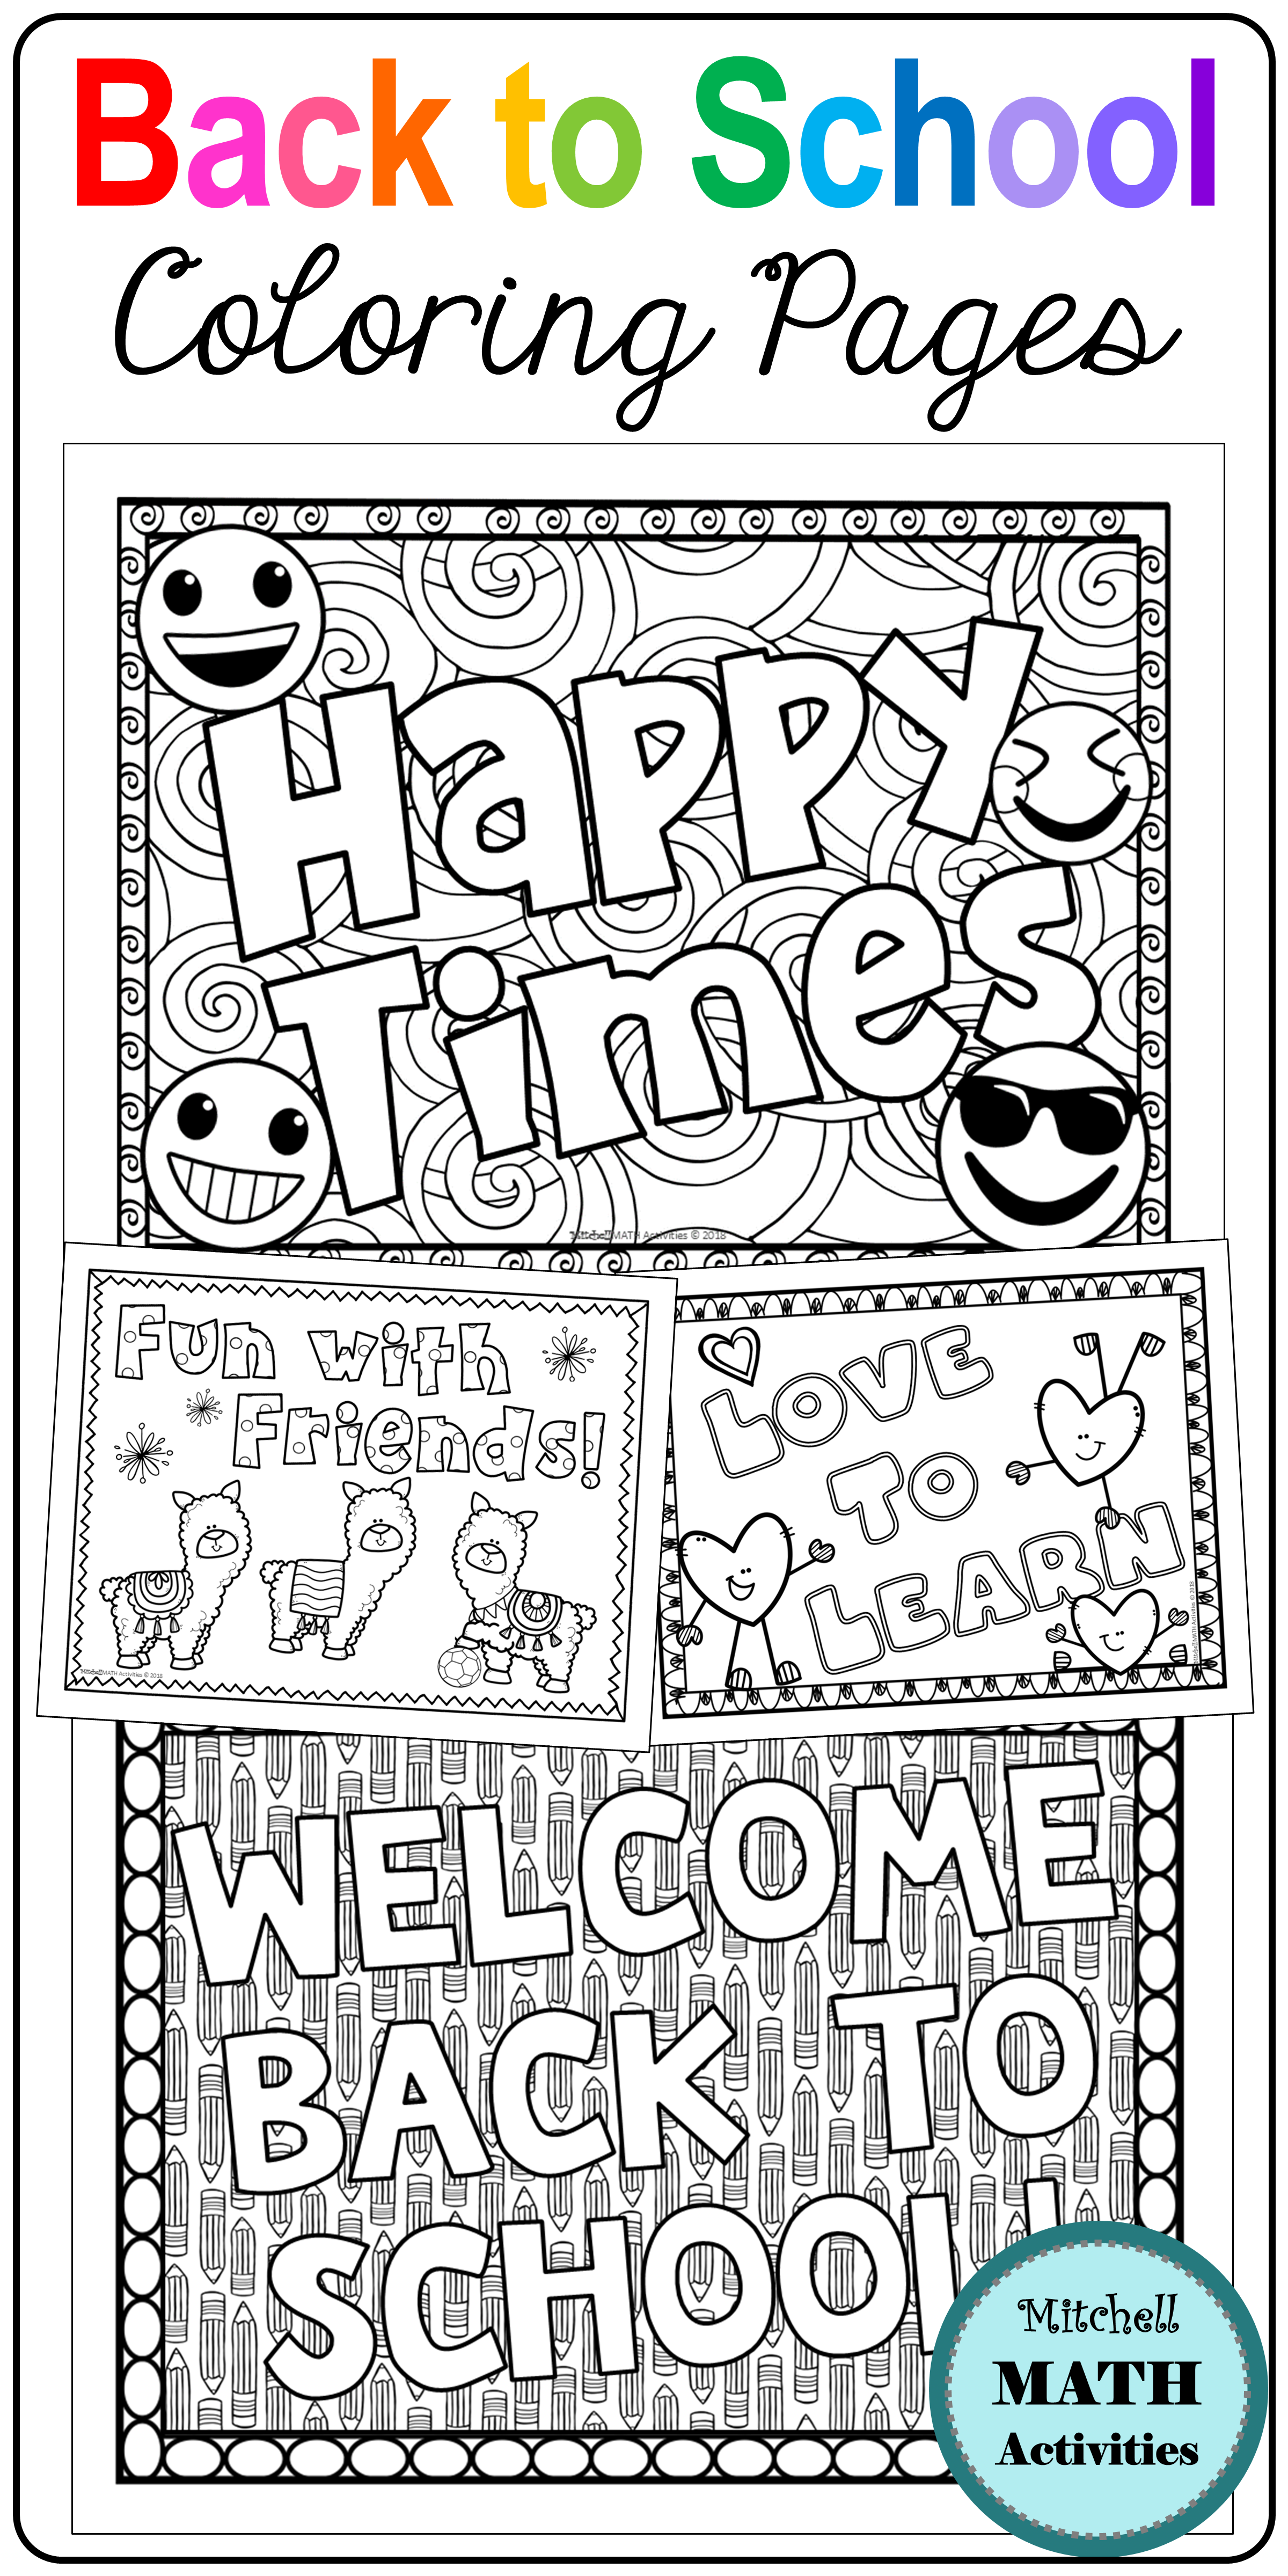 Back To School Coloring Pages By Mitchell Math Activities School Coloring Pages School Book Covers Back To School